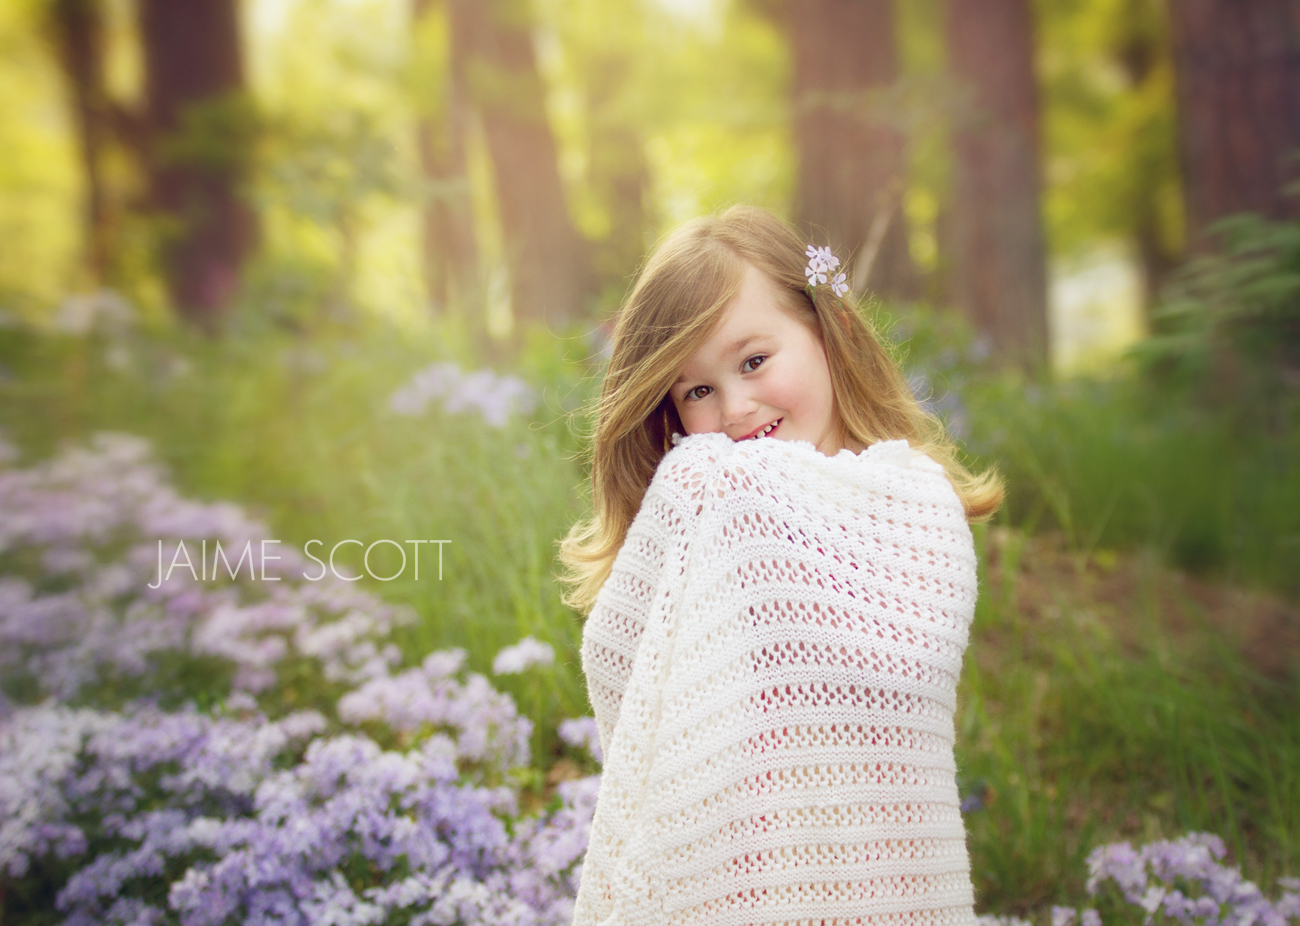 Studio Photography Ideas For Kids Your studio/business name: